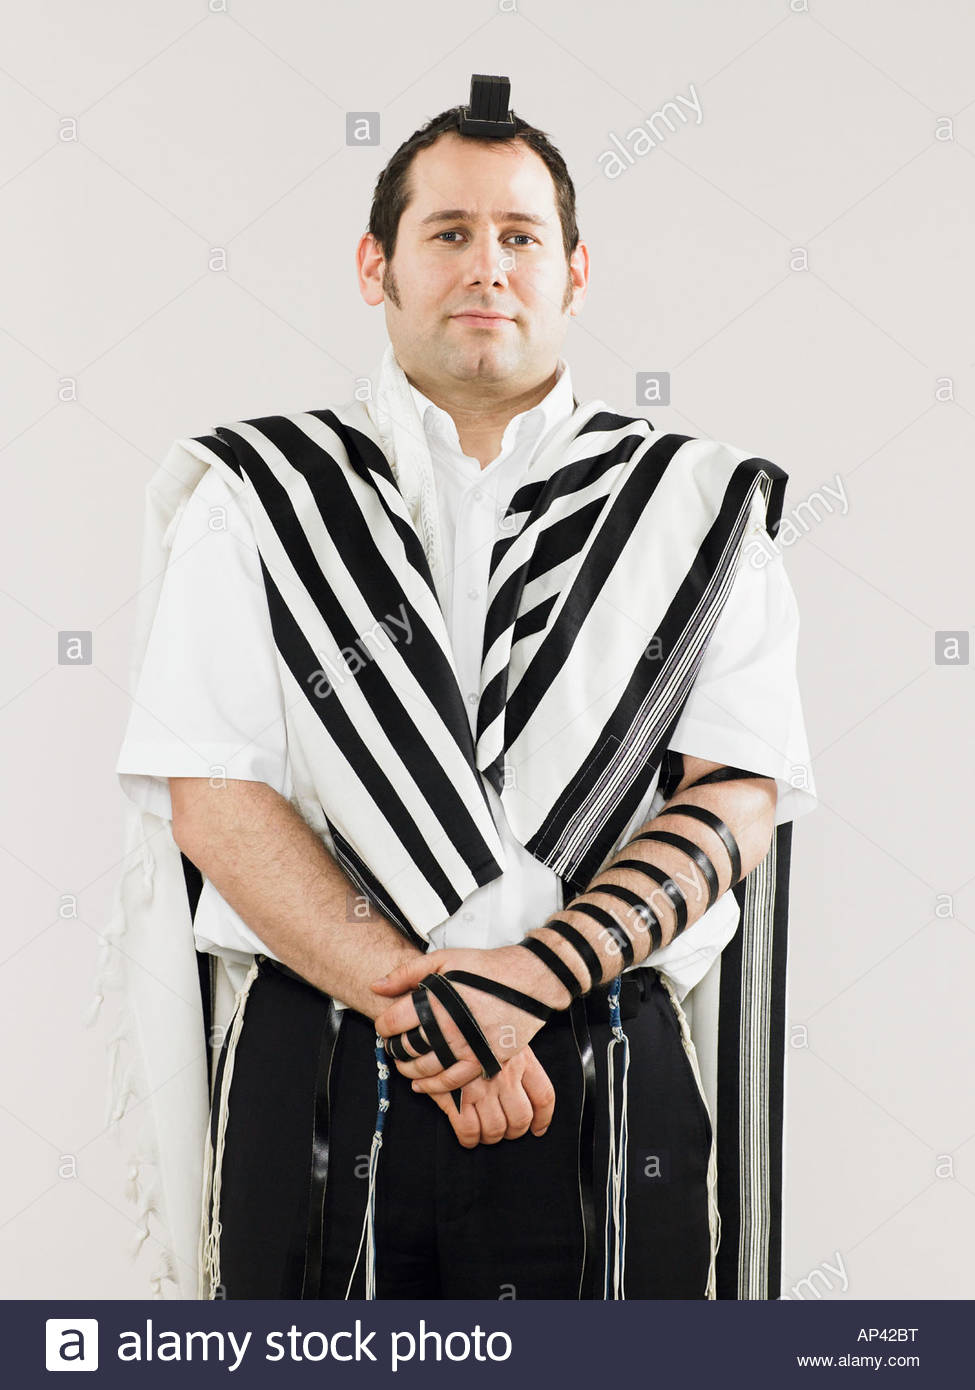 Jewish man wearing tallit and teffillin for prayers - Stock Image